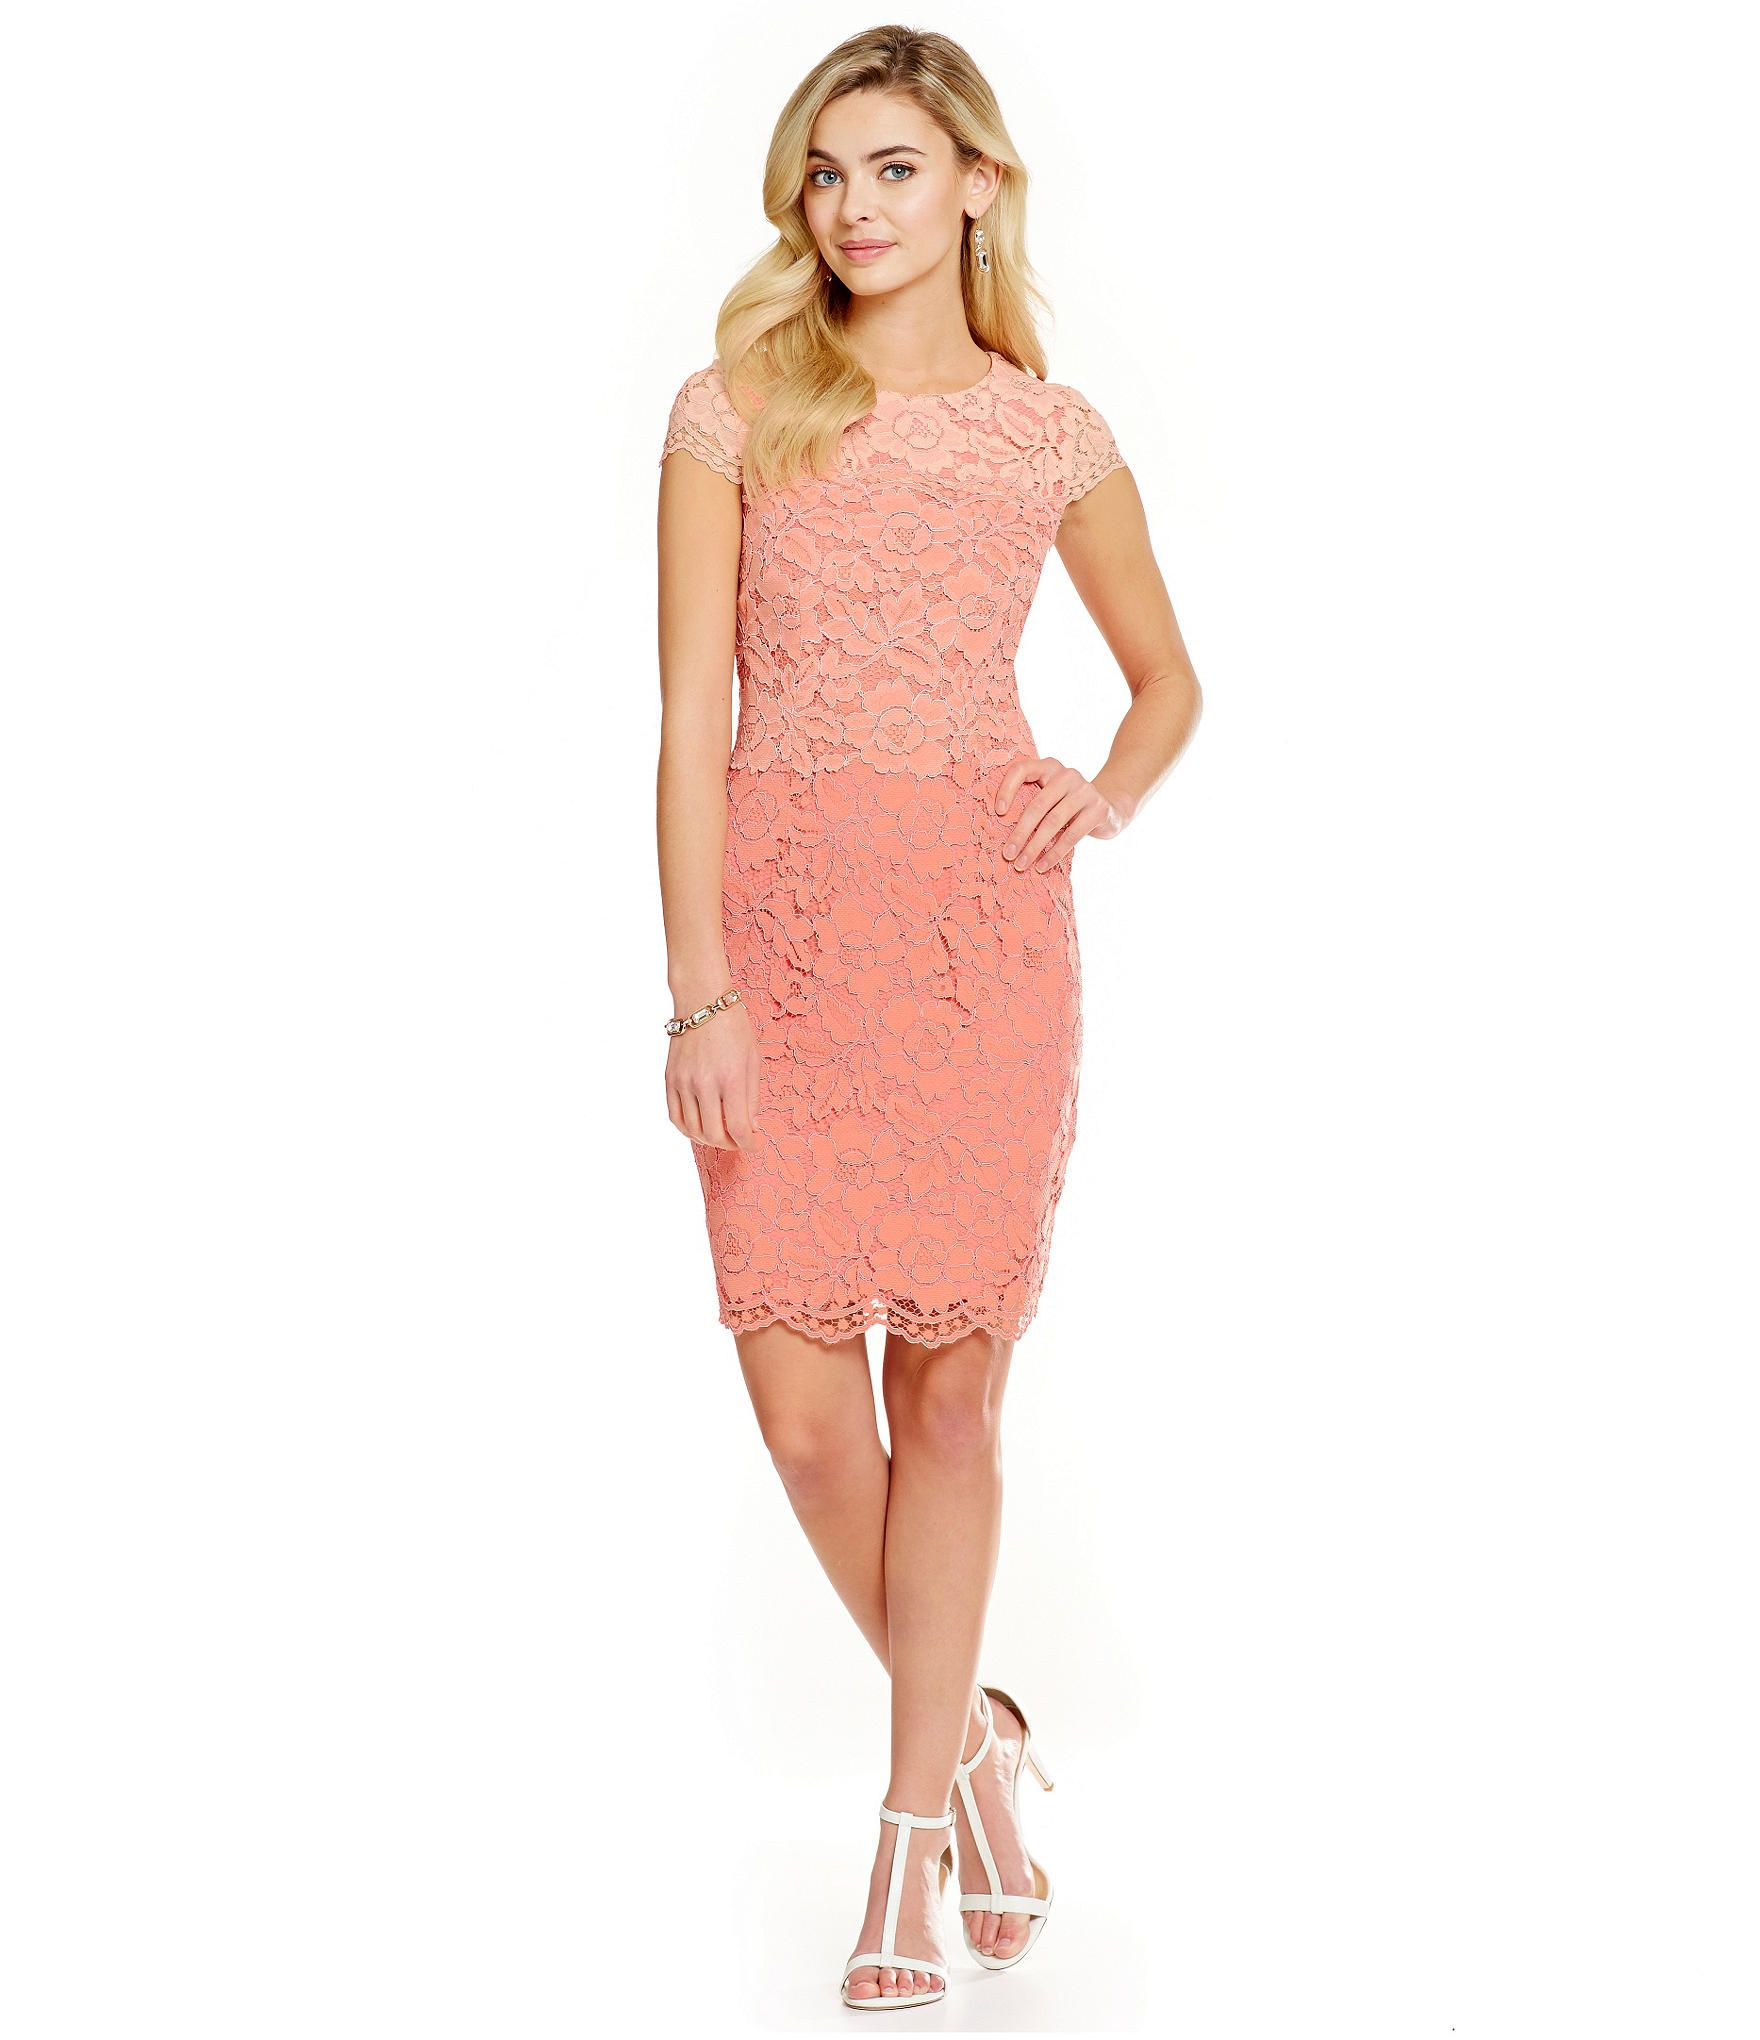 Antonio Melani Kaylee Scalloped Ombre-Lace Dress | Dillards ...